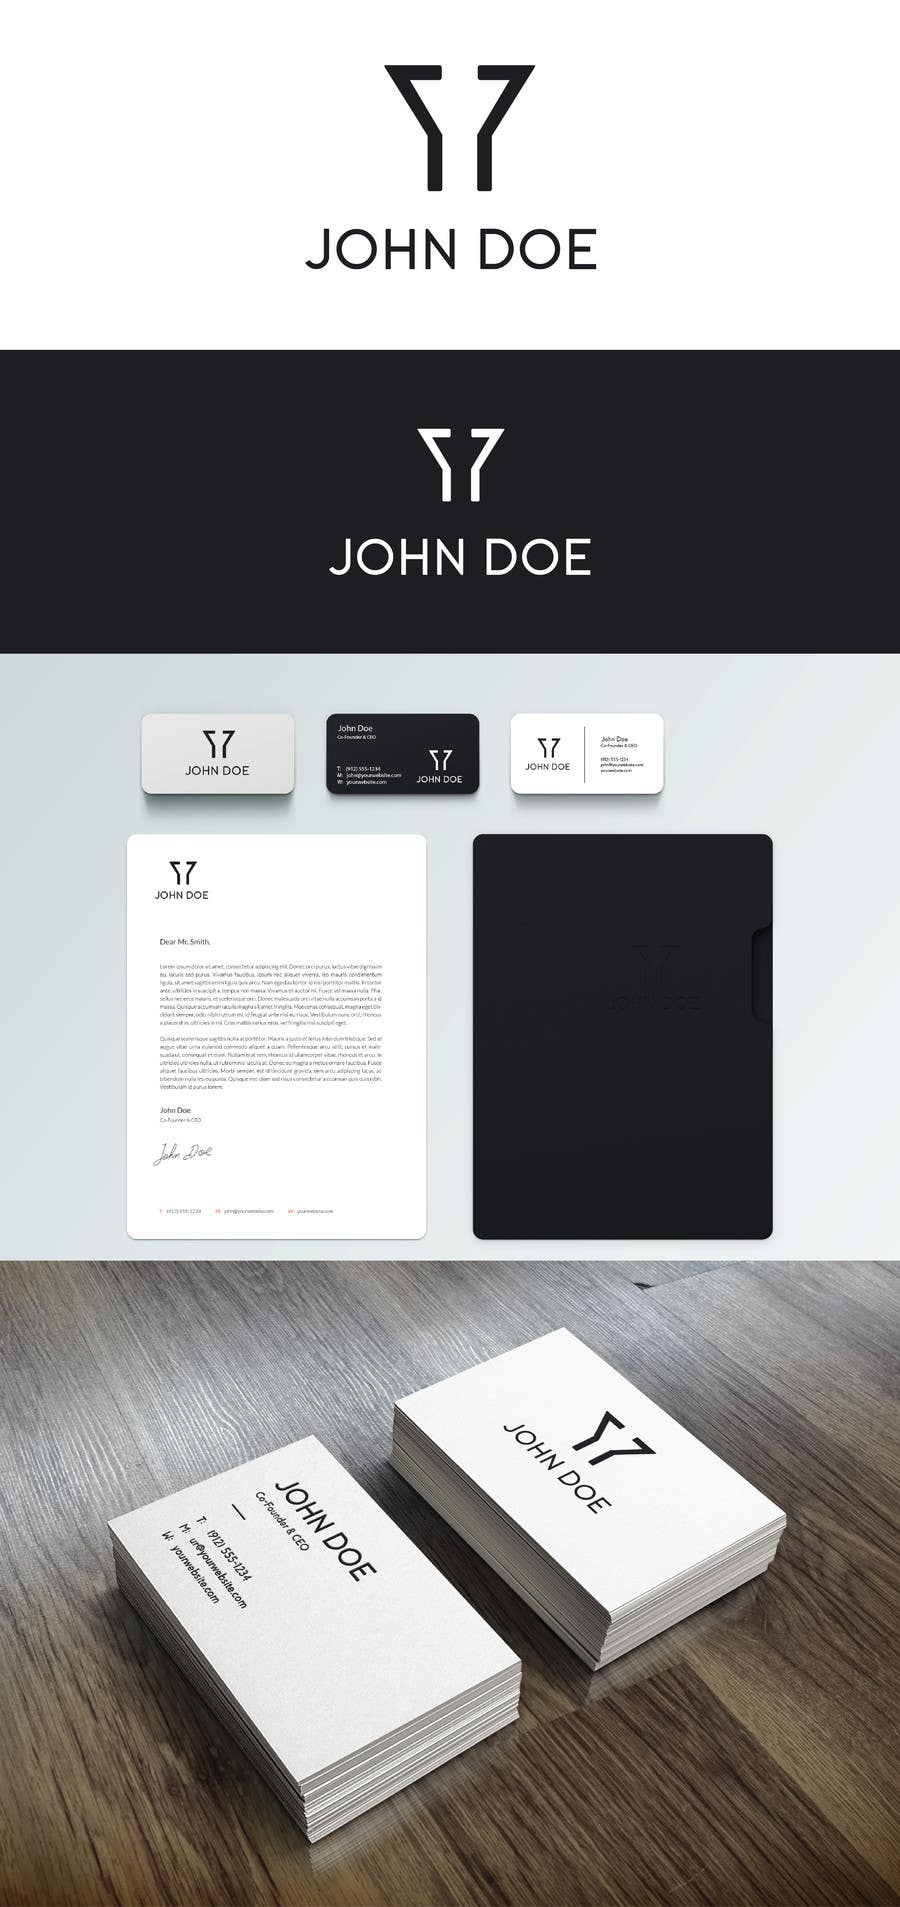 Contest Entry #796 for Design some Business Cards